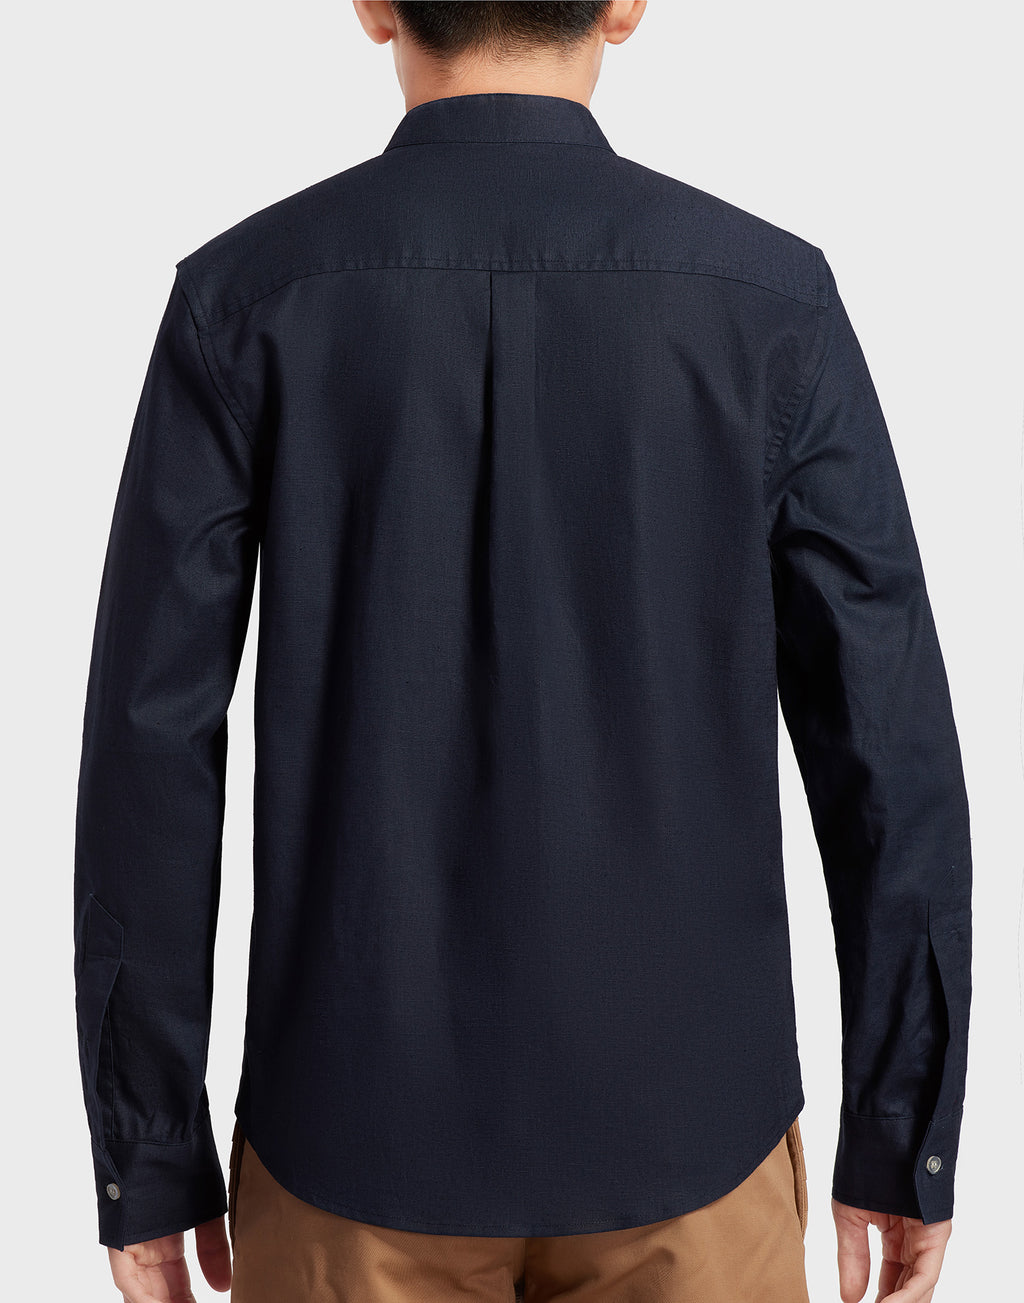 Navy Blue Mandarin Collar Shirt